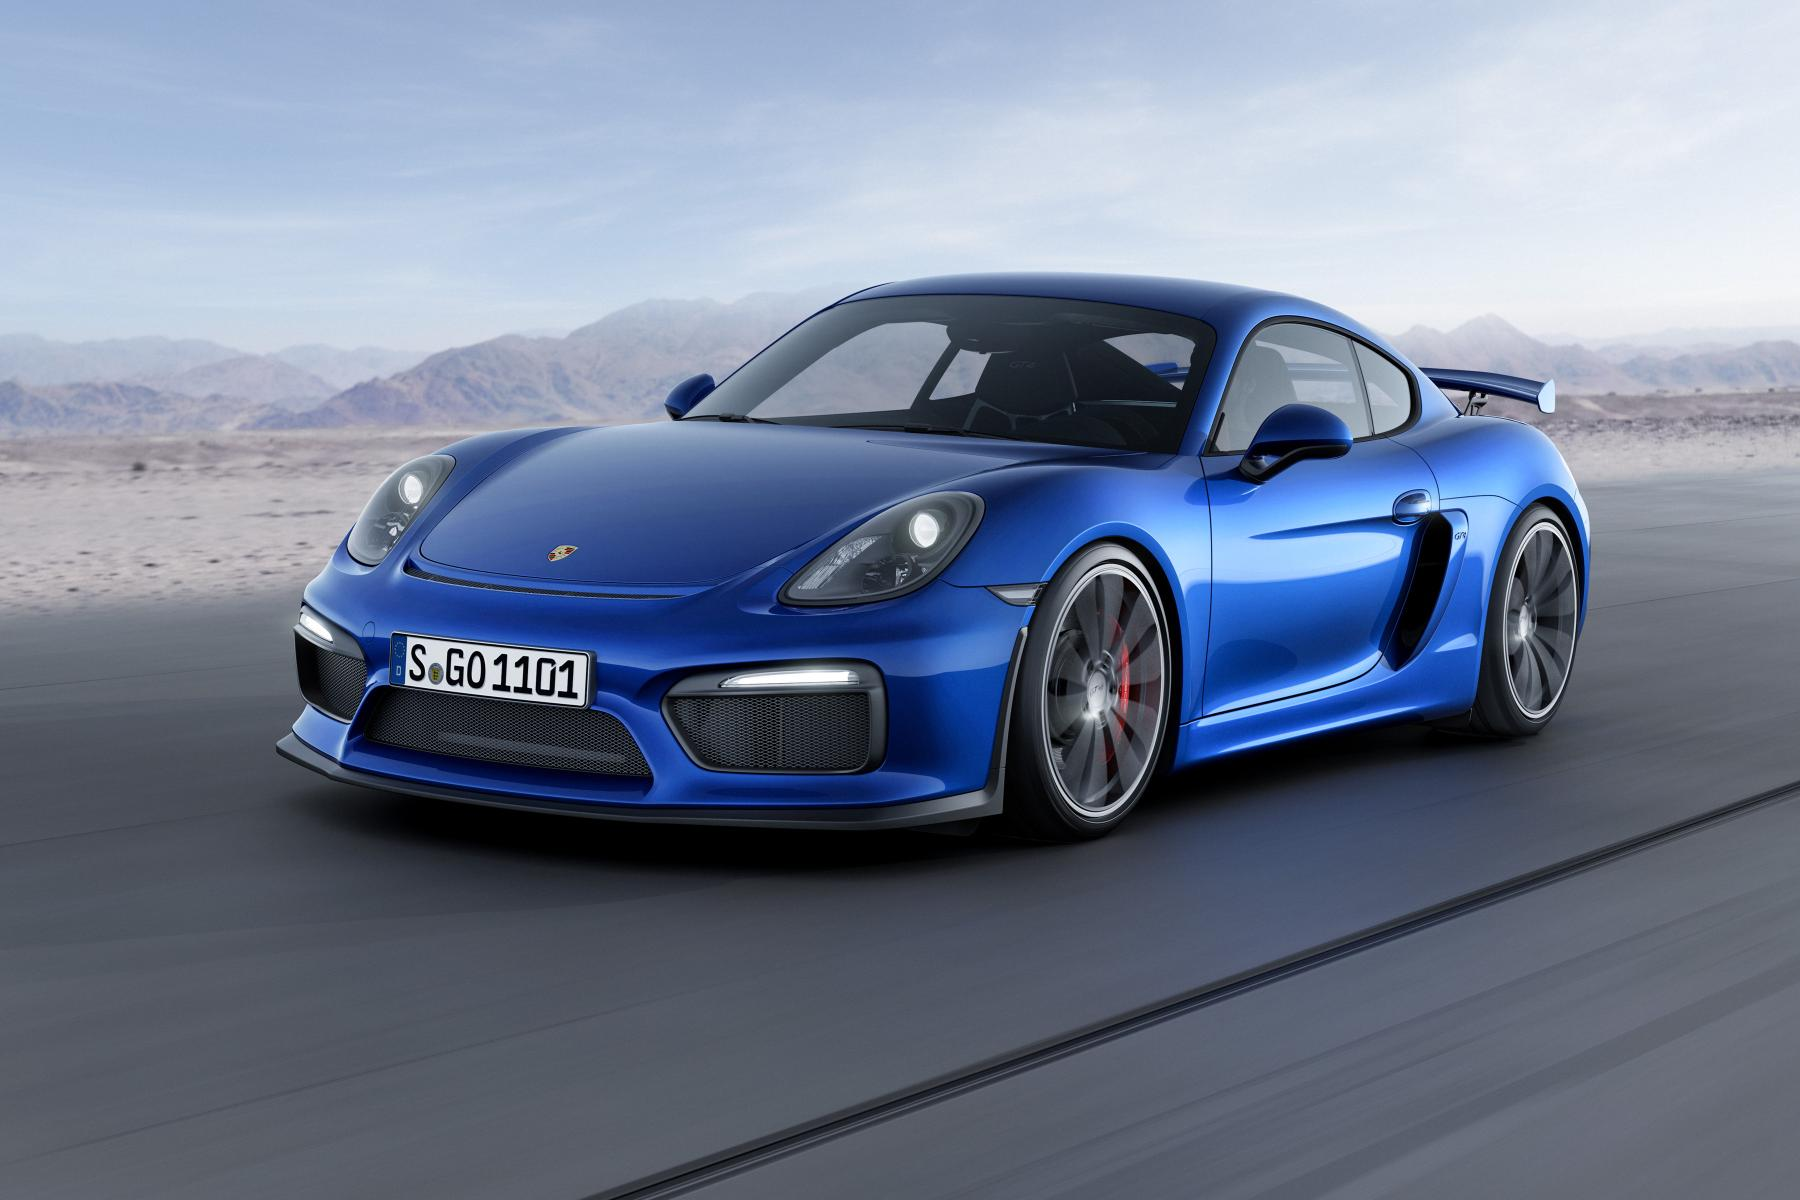 geneva 2015 porsche cayman gt4 revealed ahead of show debut the. Black Bedroom Furniture Sets. Home Design Ideas